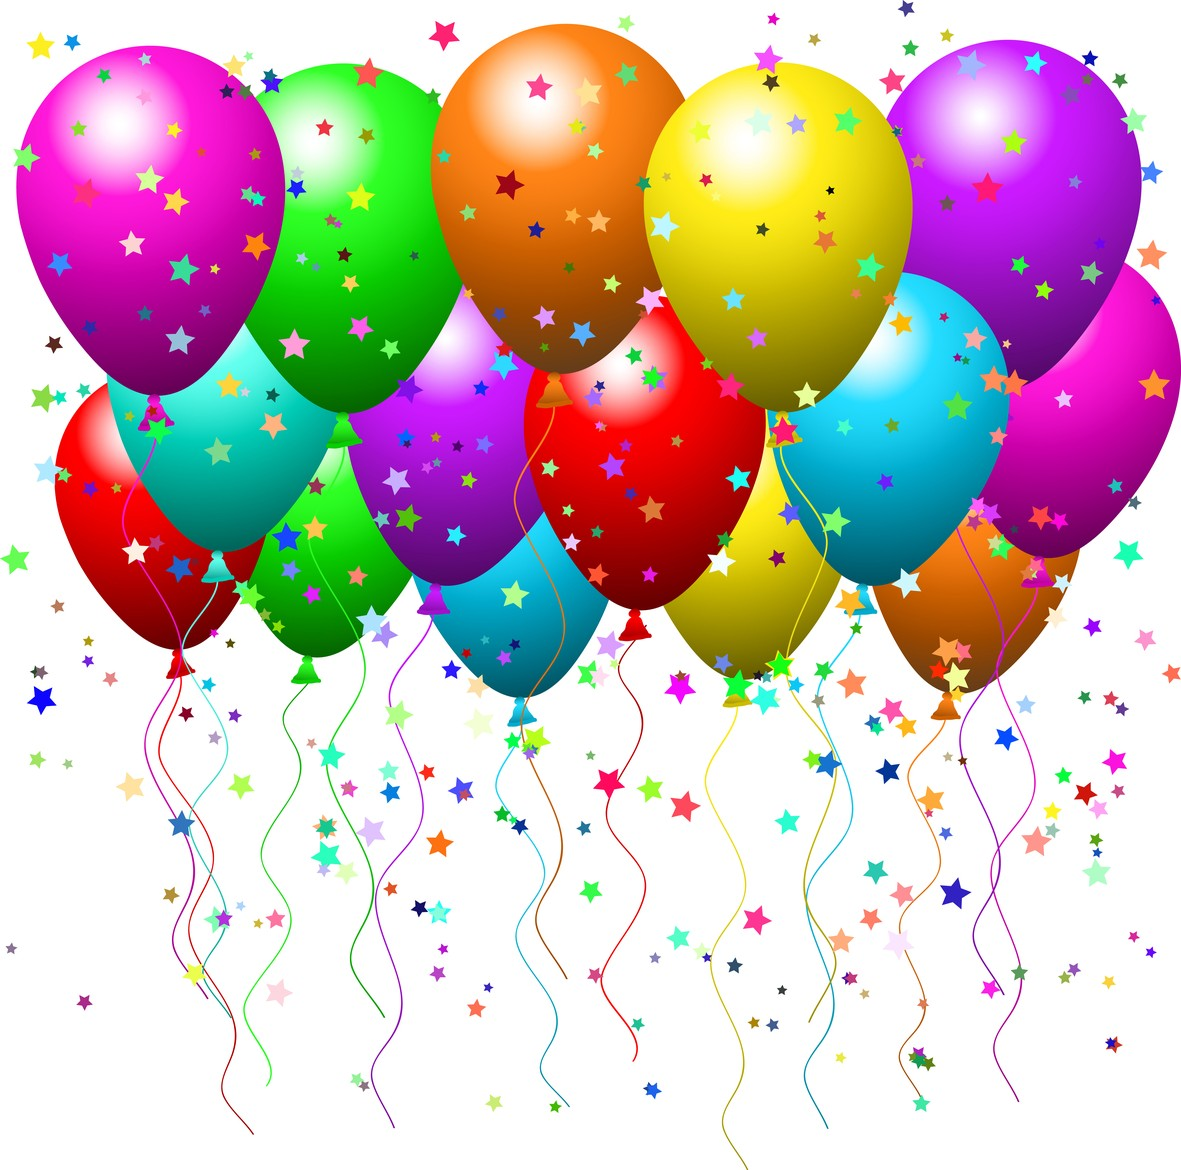 31 Birthday Balloon Png Free . Download:. Free clipart .